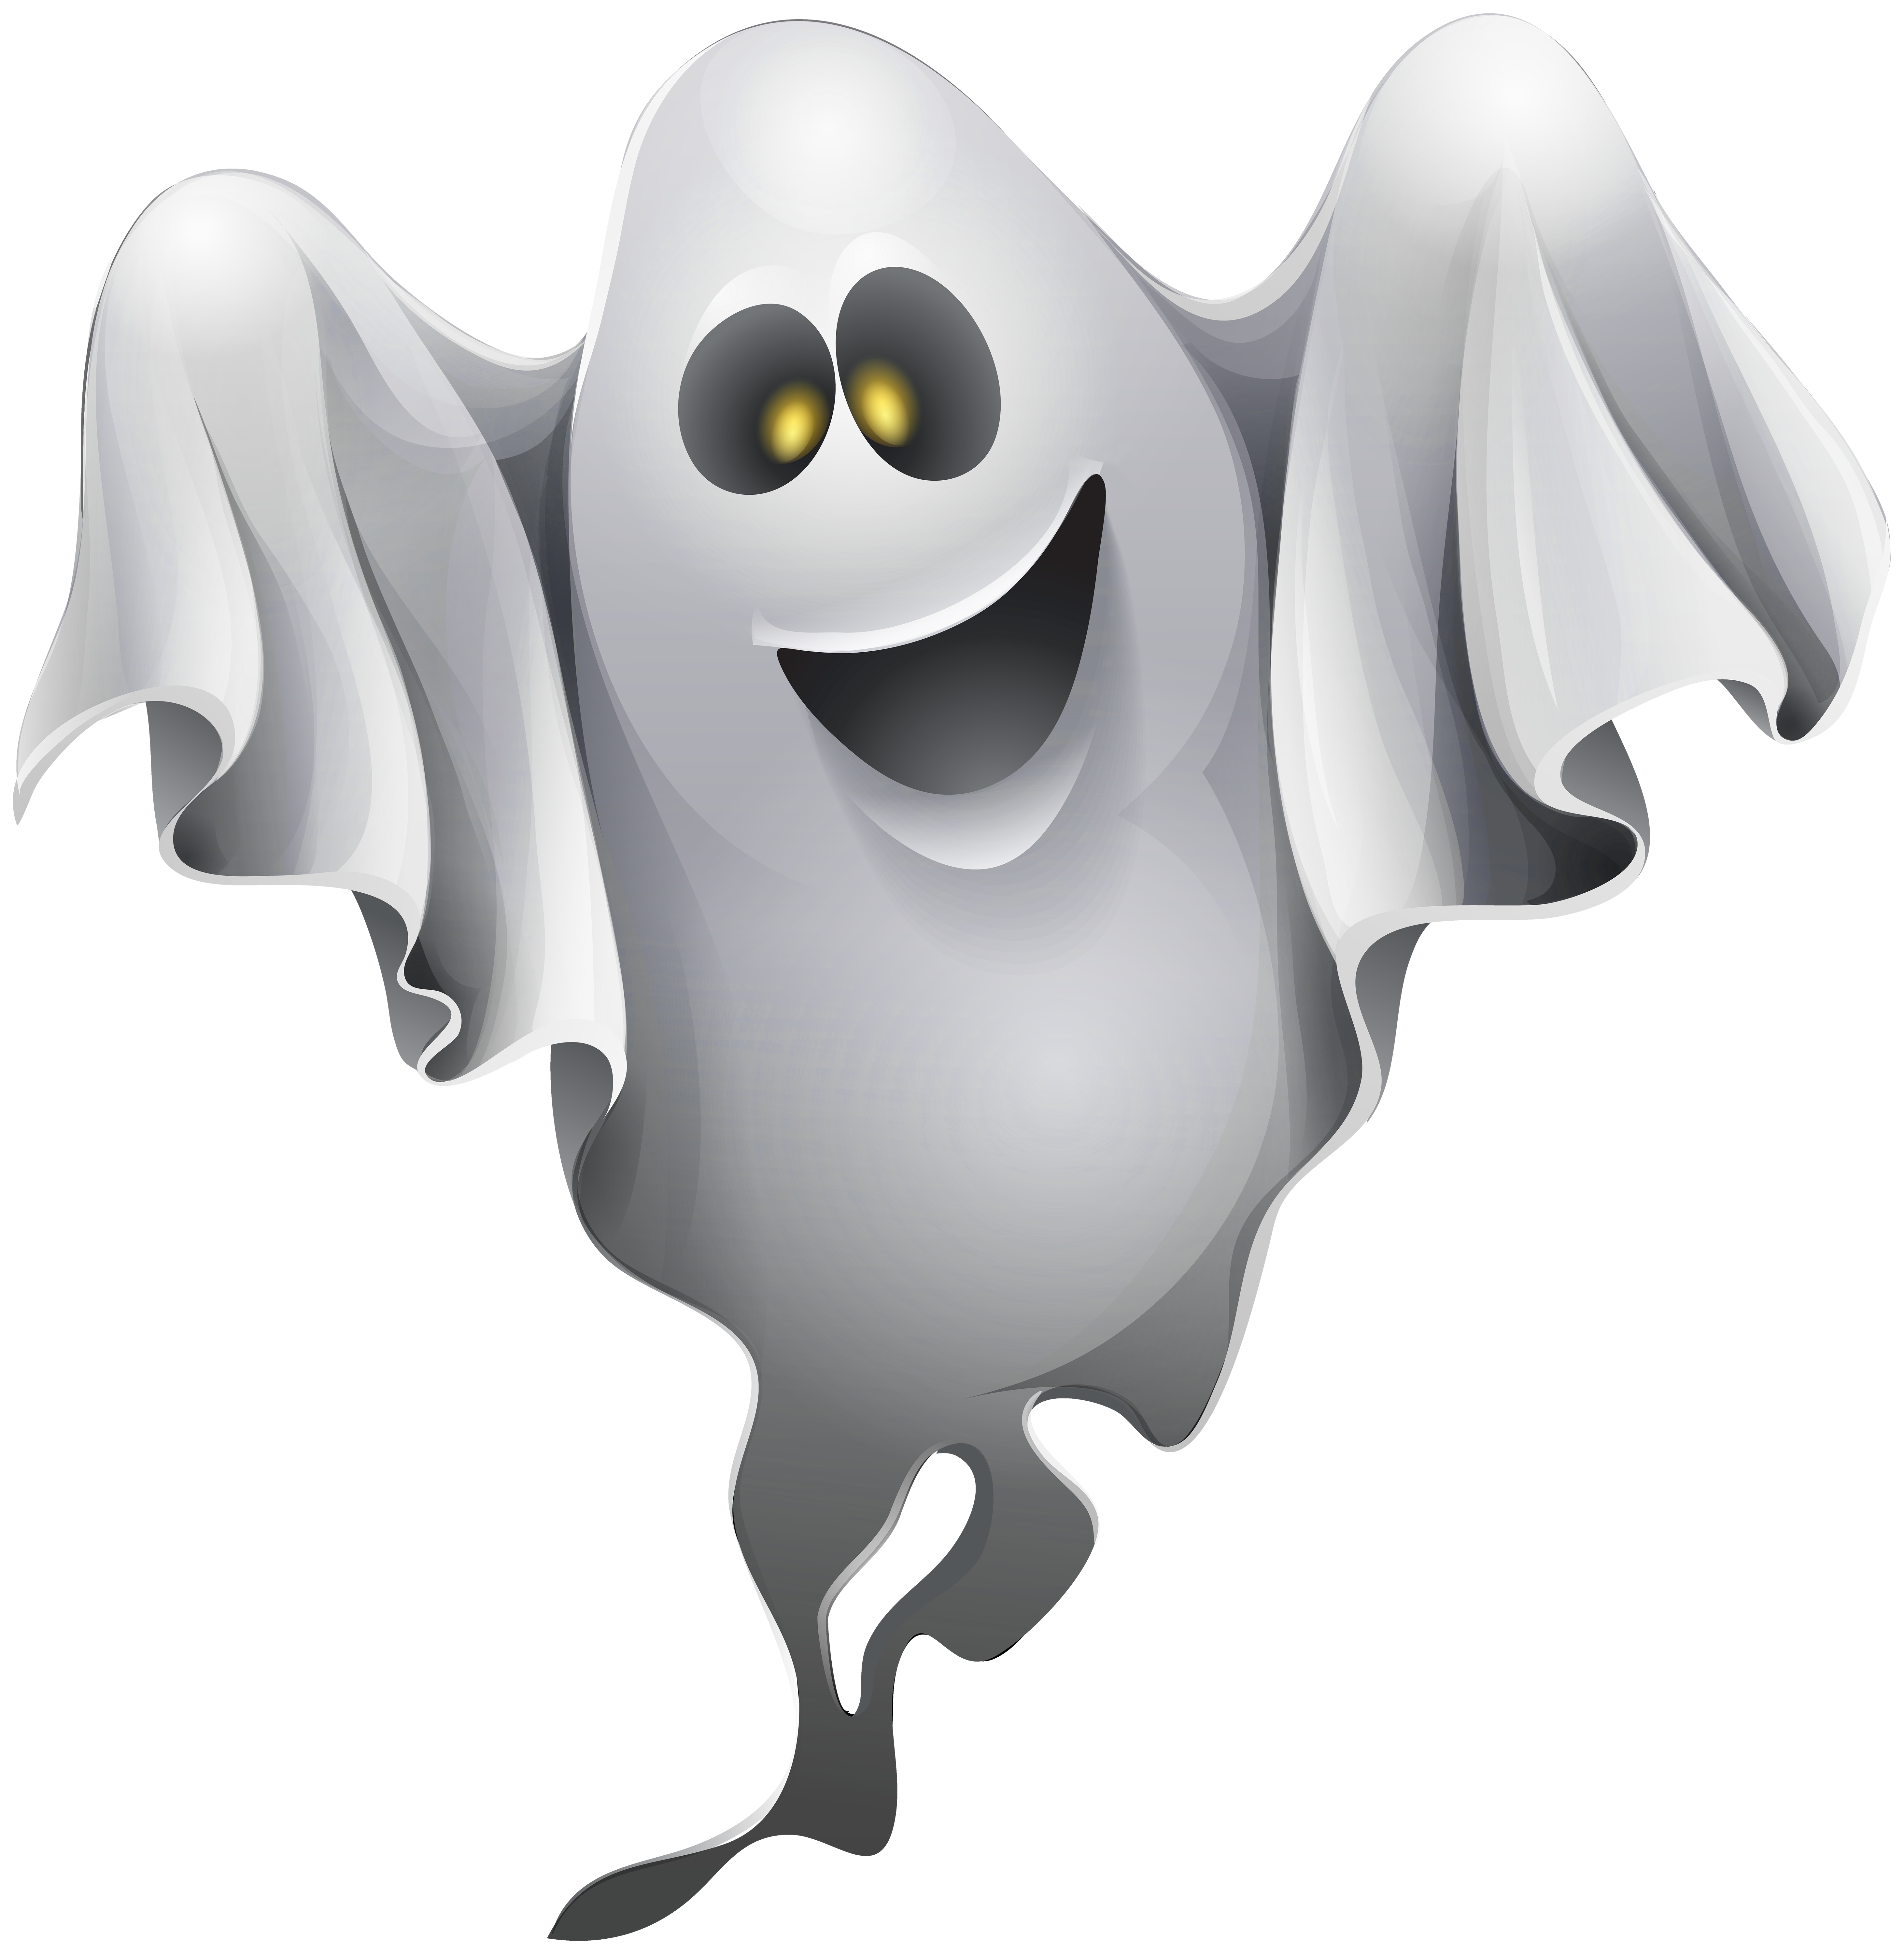 Clipart halloween ghost jpg royalty free library Halloween Ghost PNG Clip Art Image | Gallery Yopriceville - High ... jpg royalty free library